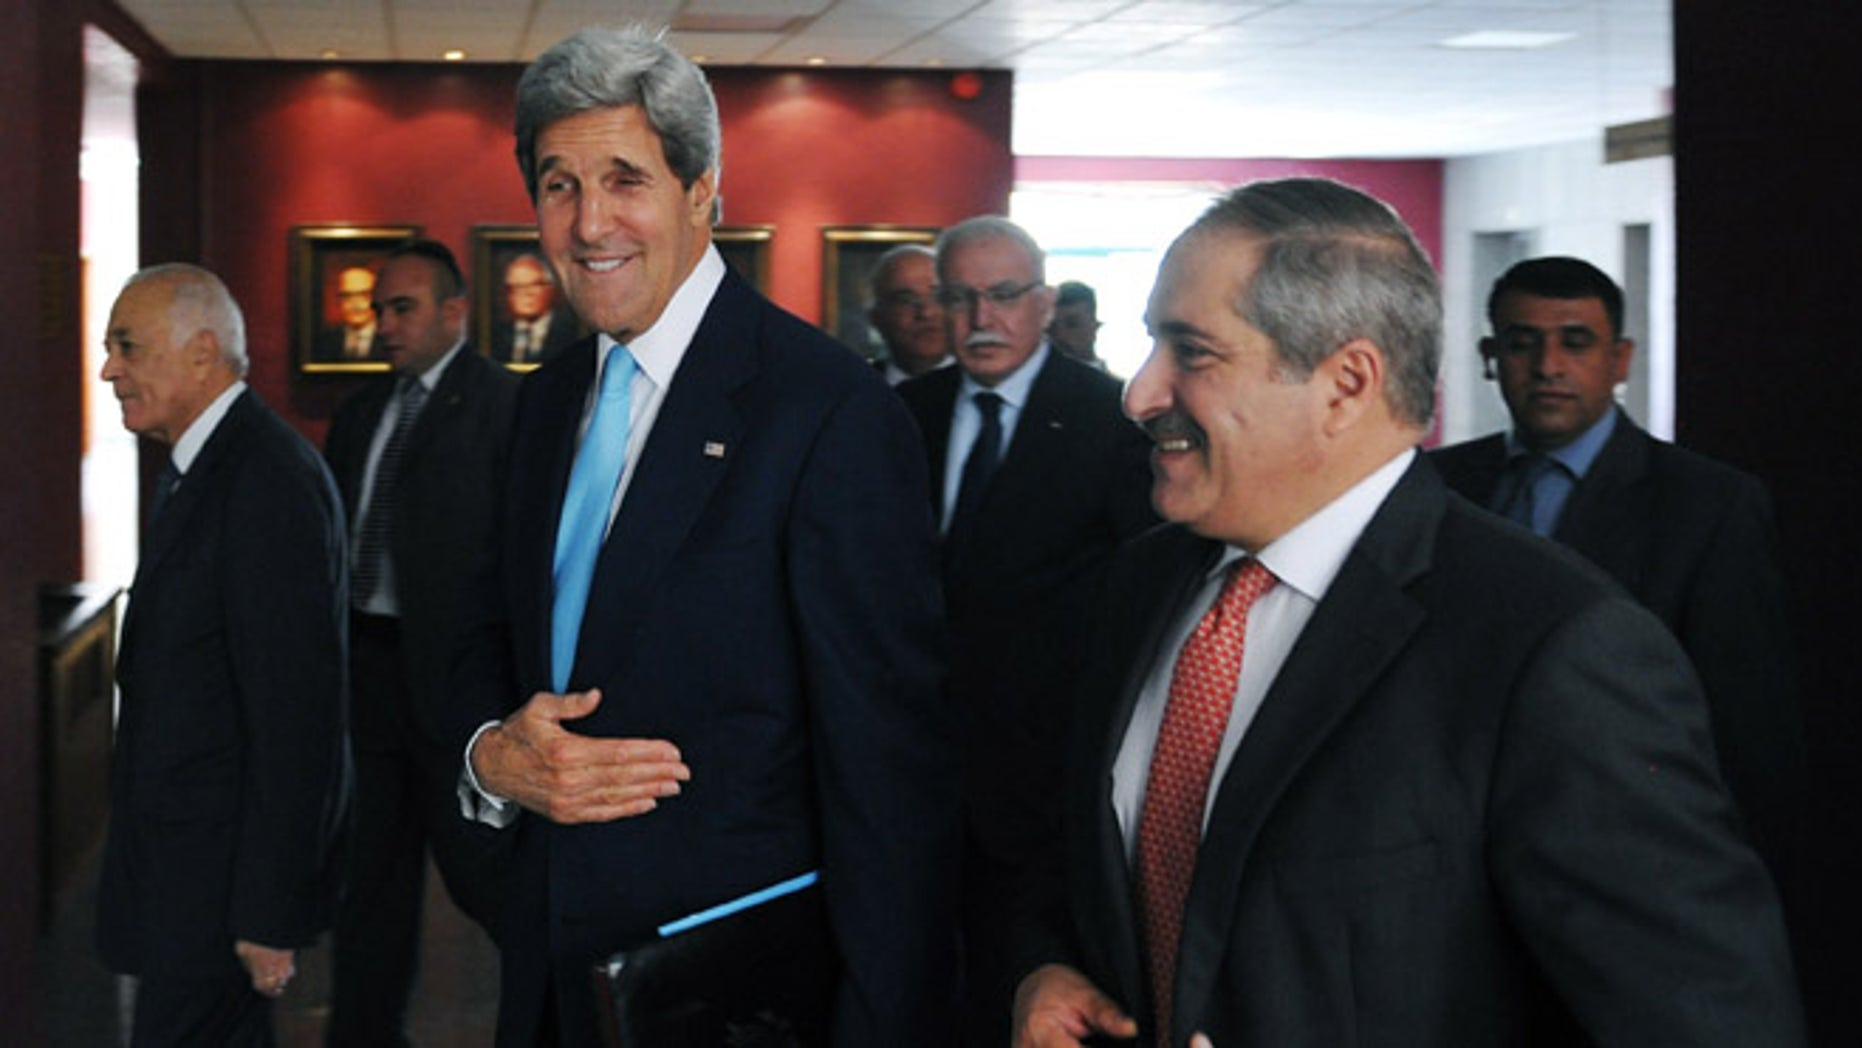 July 17, 2013: U.S. Secretary of State John Kerry, center, Jordan's Foreign Minister Nasser Judeh, right, and Egypt's Foreign Minister Mohammed Kamel Amr, left, arrive for a meeting with the Arab League Peace Initiative at the Ministry of Foreign Affairs in Amman, Jordan.